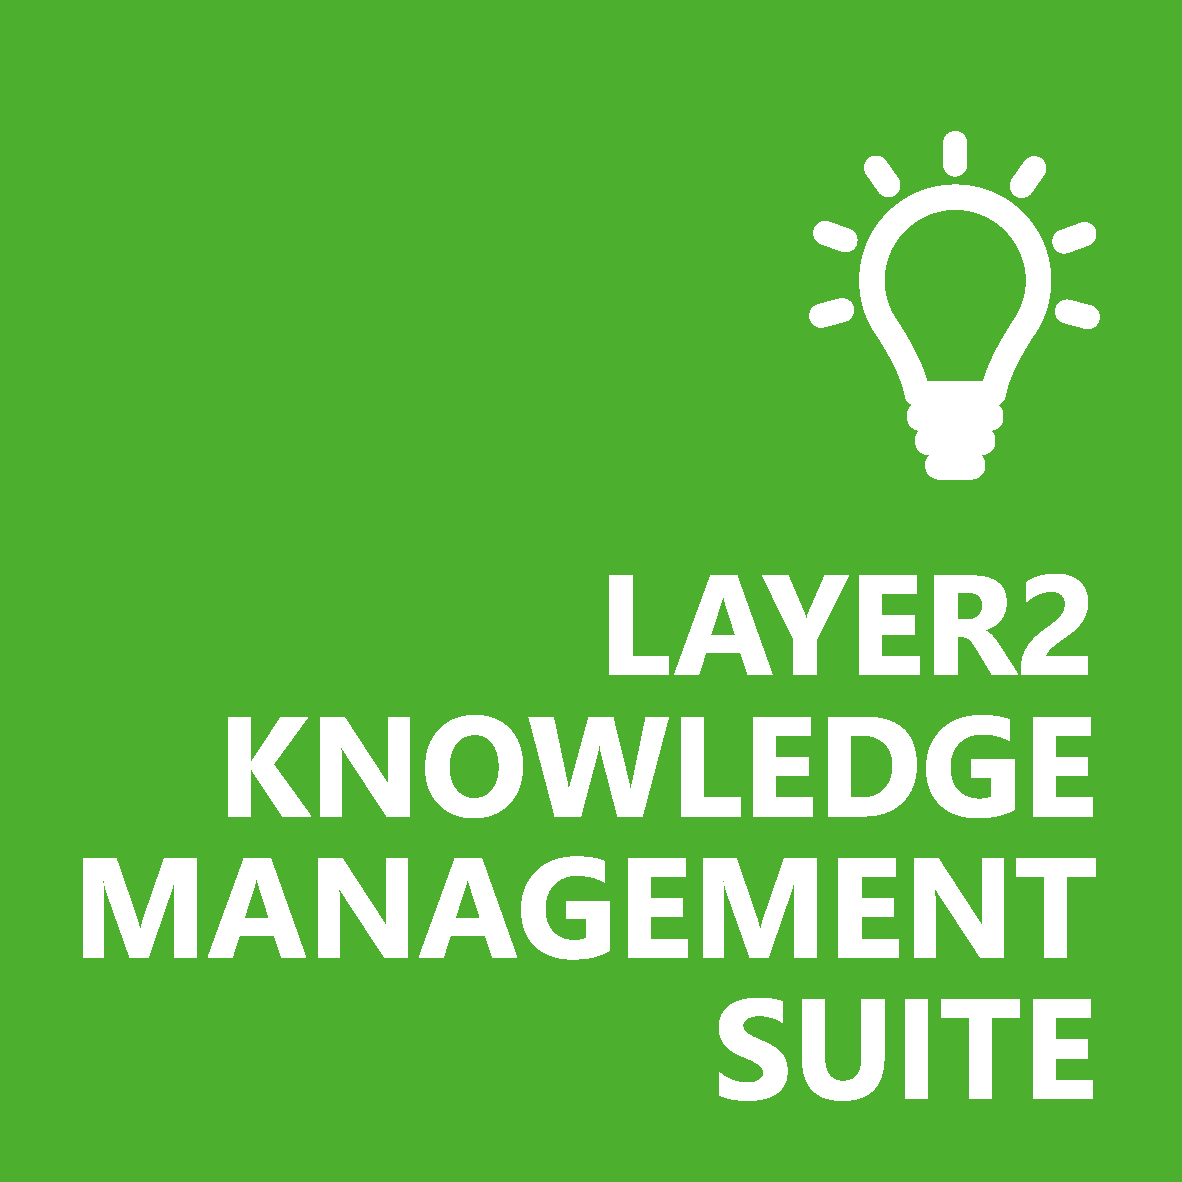 The Layer2 Knowledge Management Suite turns data into knowledge for SharePoint on-premises.